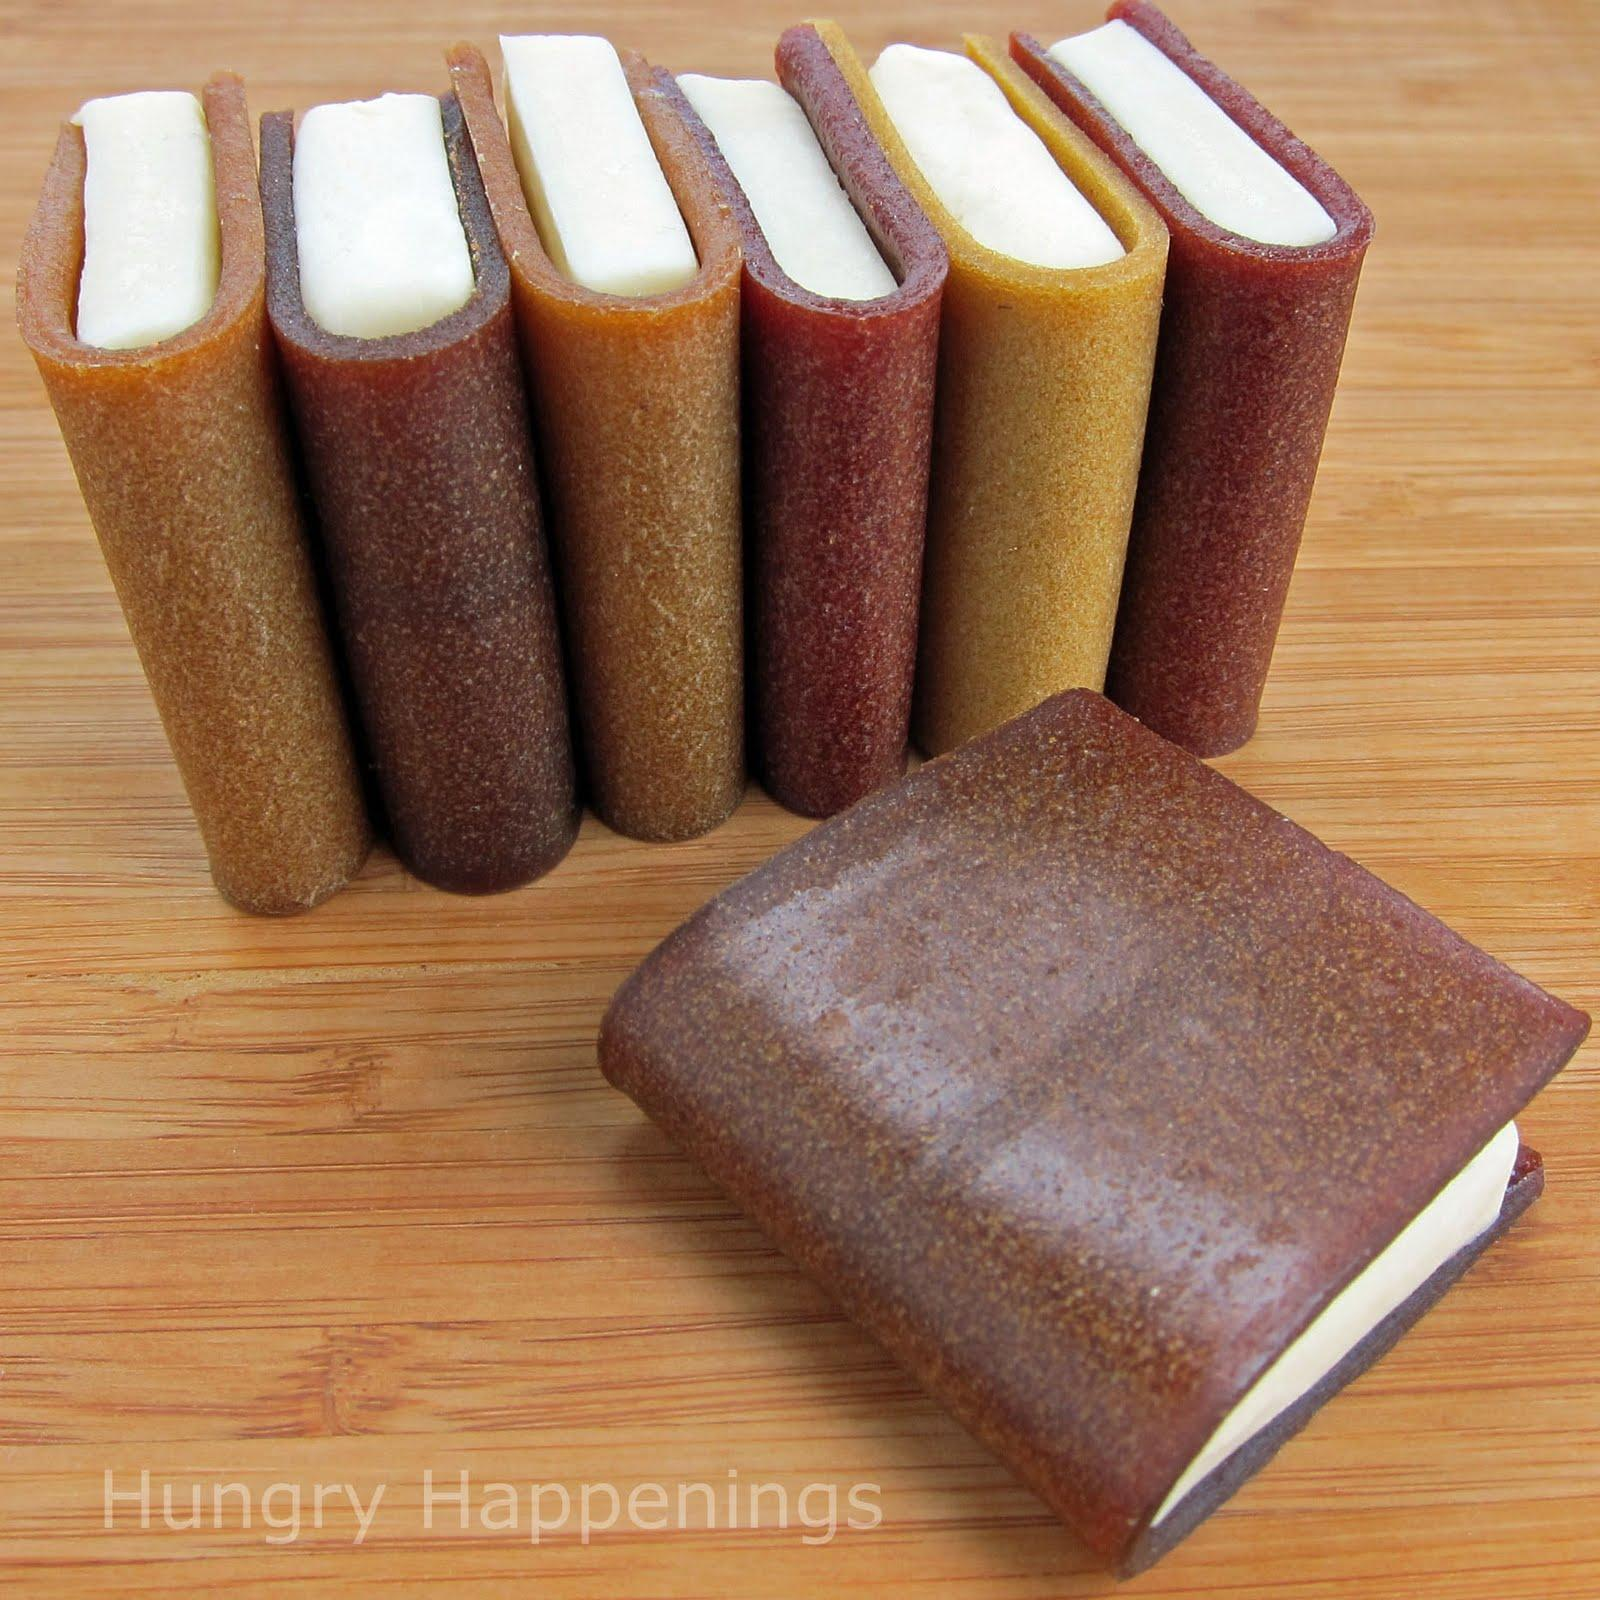 C:\Users\user\Desktop\Reacho\pics\sculpting+modeling+chocolate+into+a+book+using+fruit+leather+.jpg